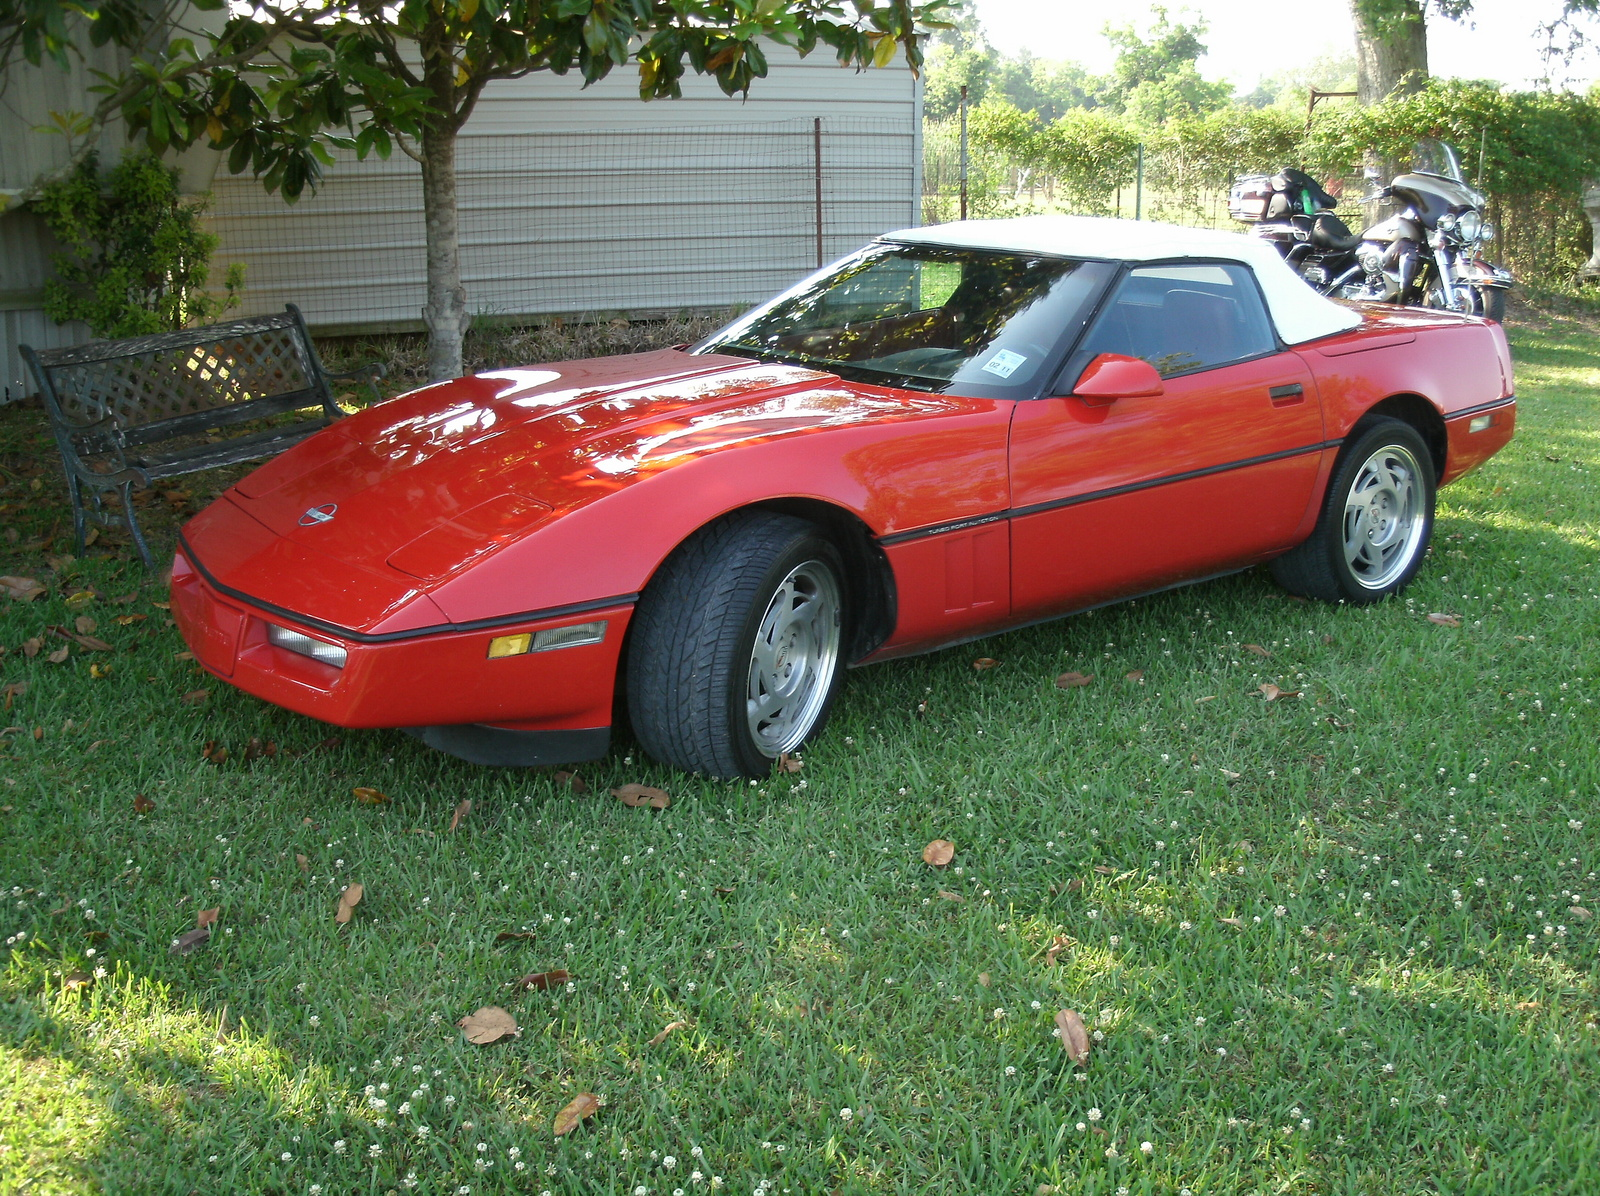 1990 Chevrolet Corvette Convertible picture, exterior